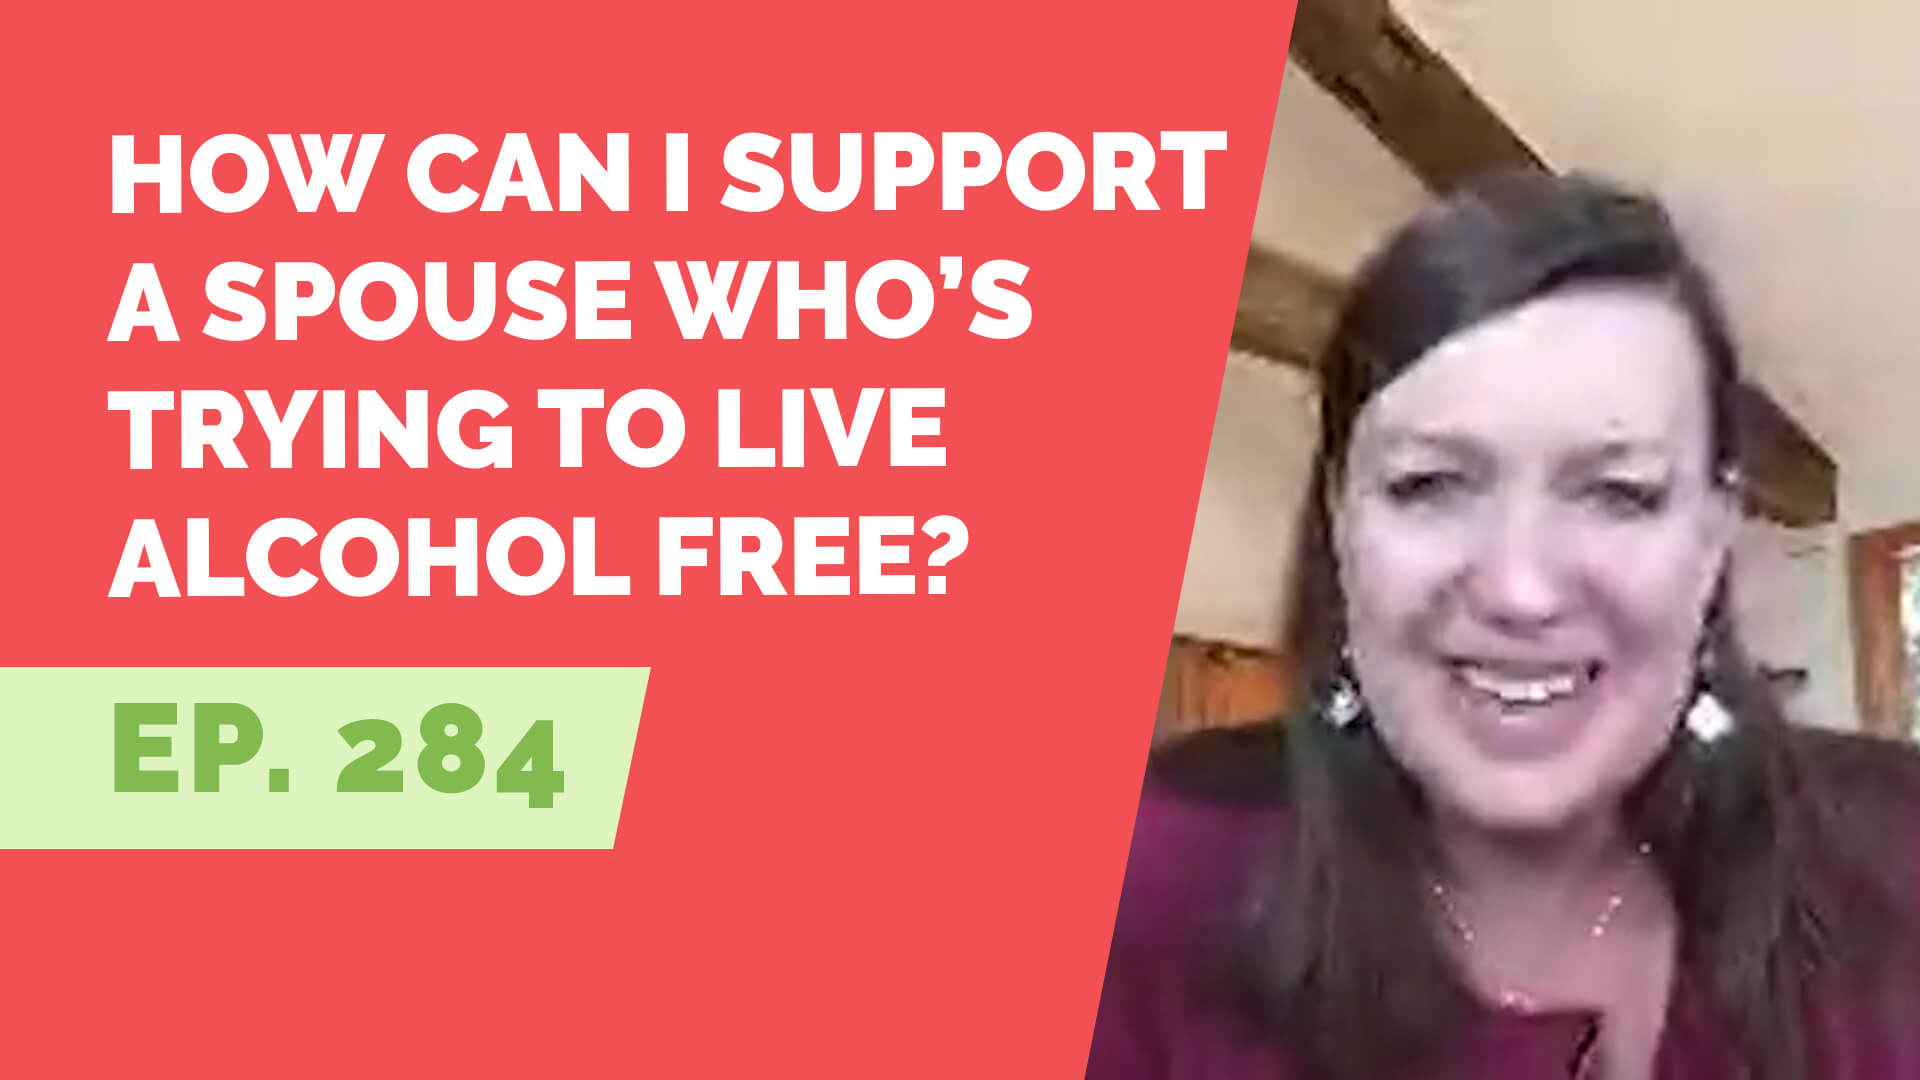 support an alcohol free spouse